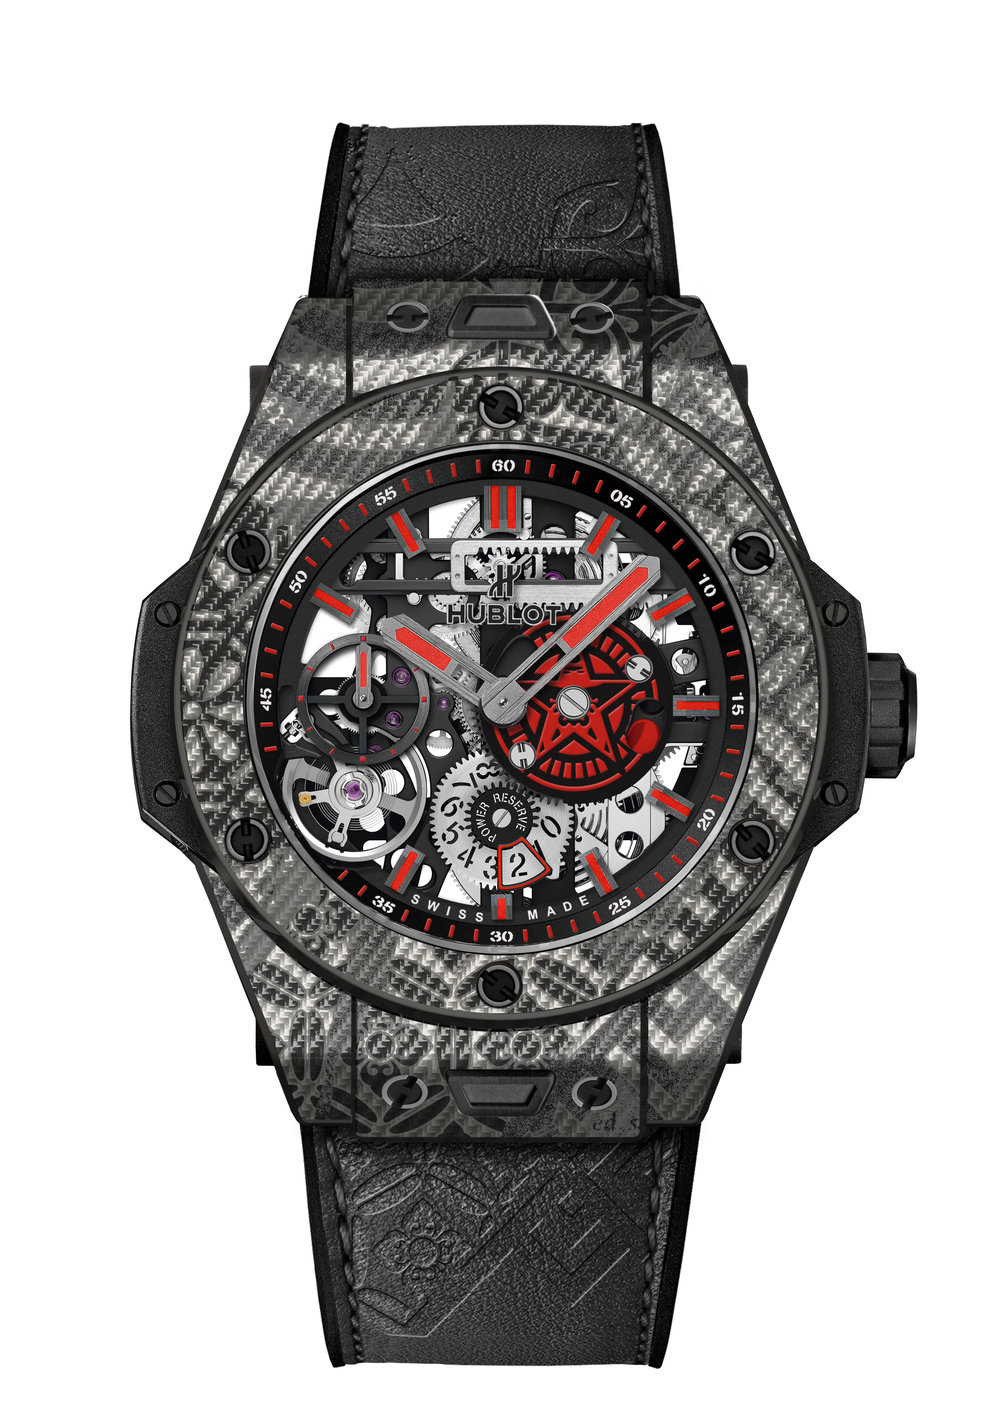 "HUBLOT BIG BANG MECA-10 ""SHEPARD FAIREY GREY"" watch."